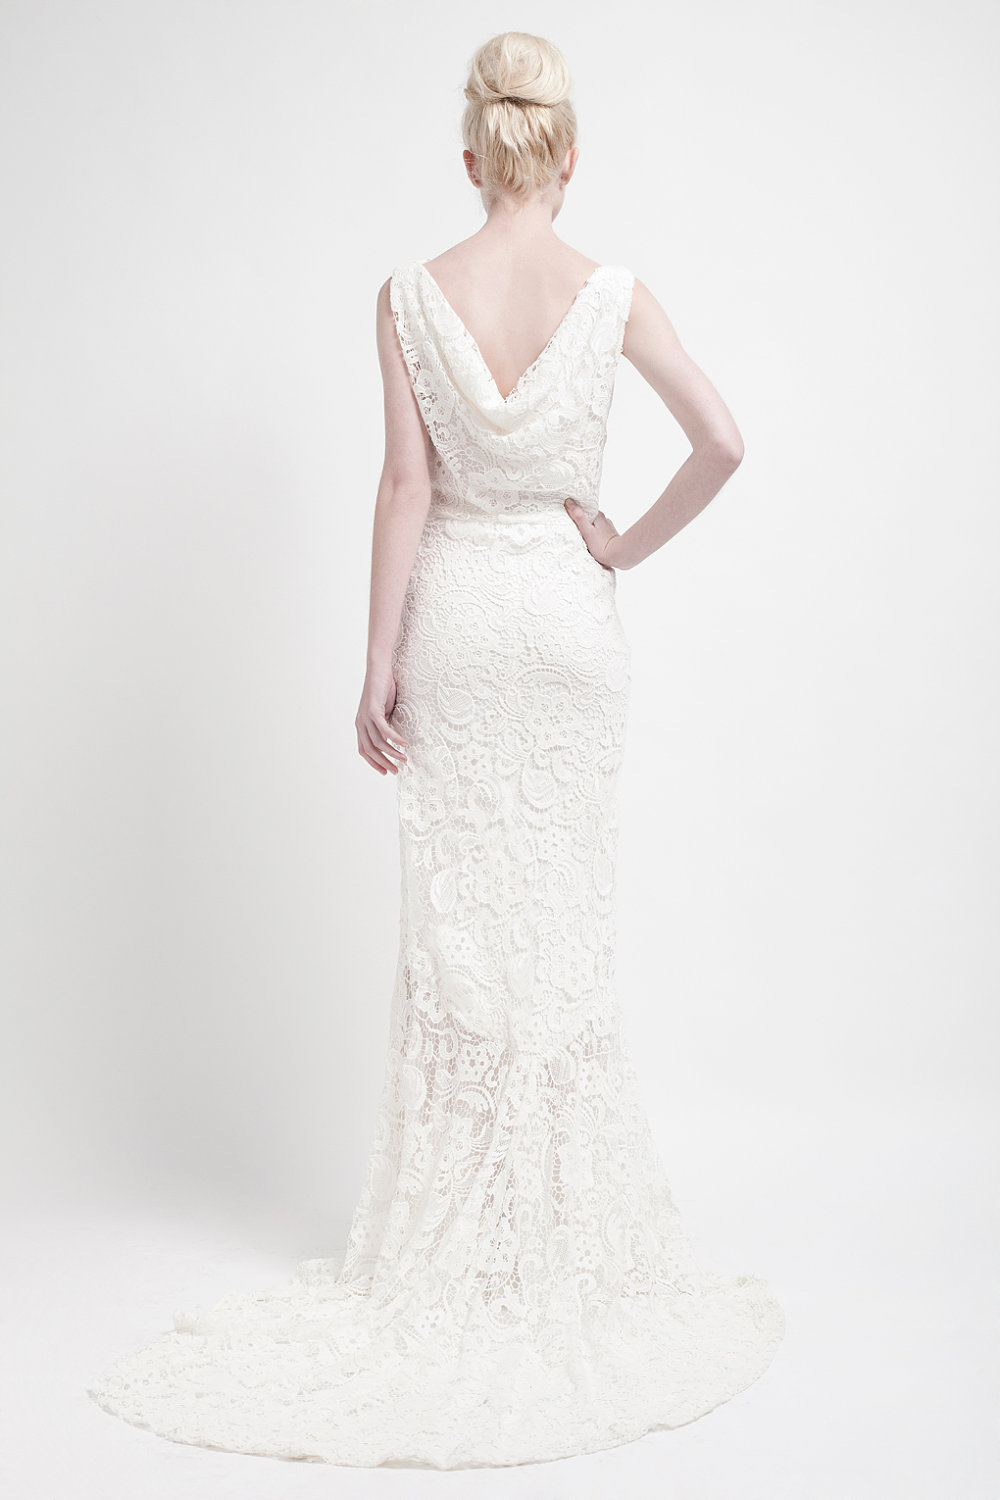 Handmade-wedding-dresses-bridal-designers-to-watch-kelsey-genna-3.full